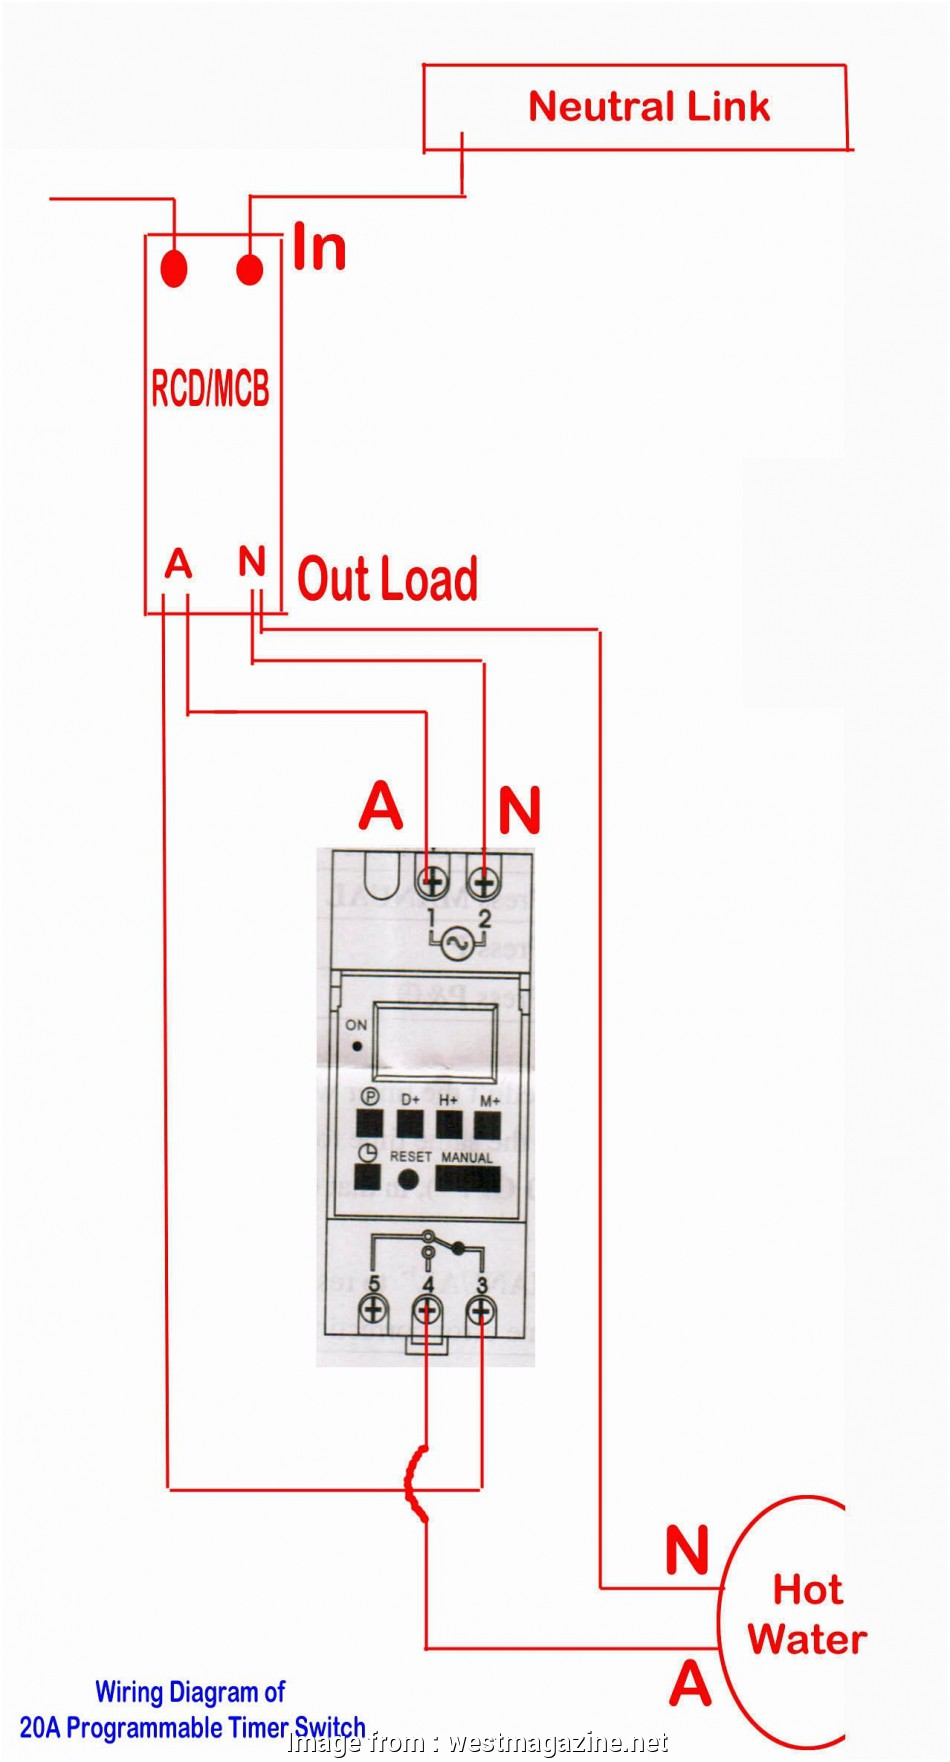 How To Wire A 240V Light Switch Perfect Wiring Anderson ...